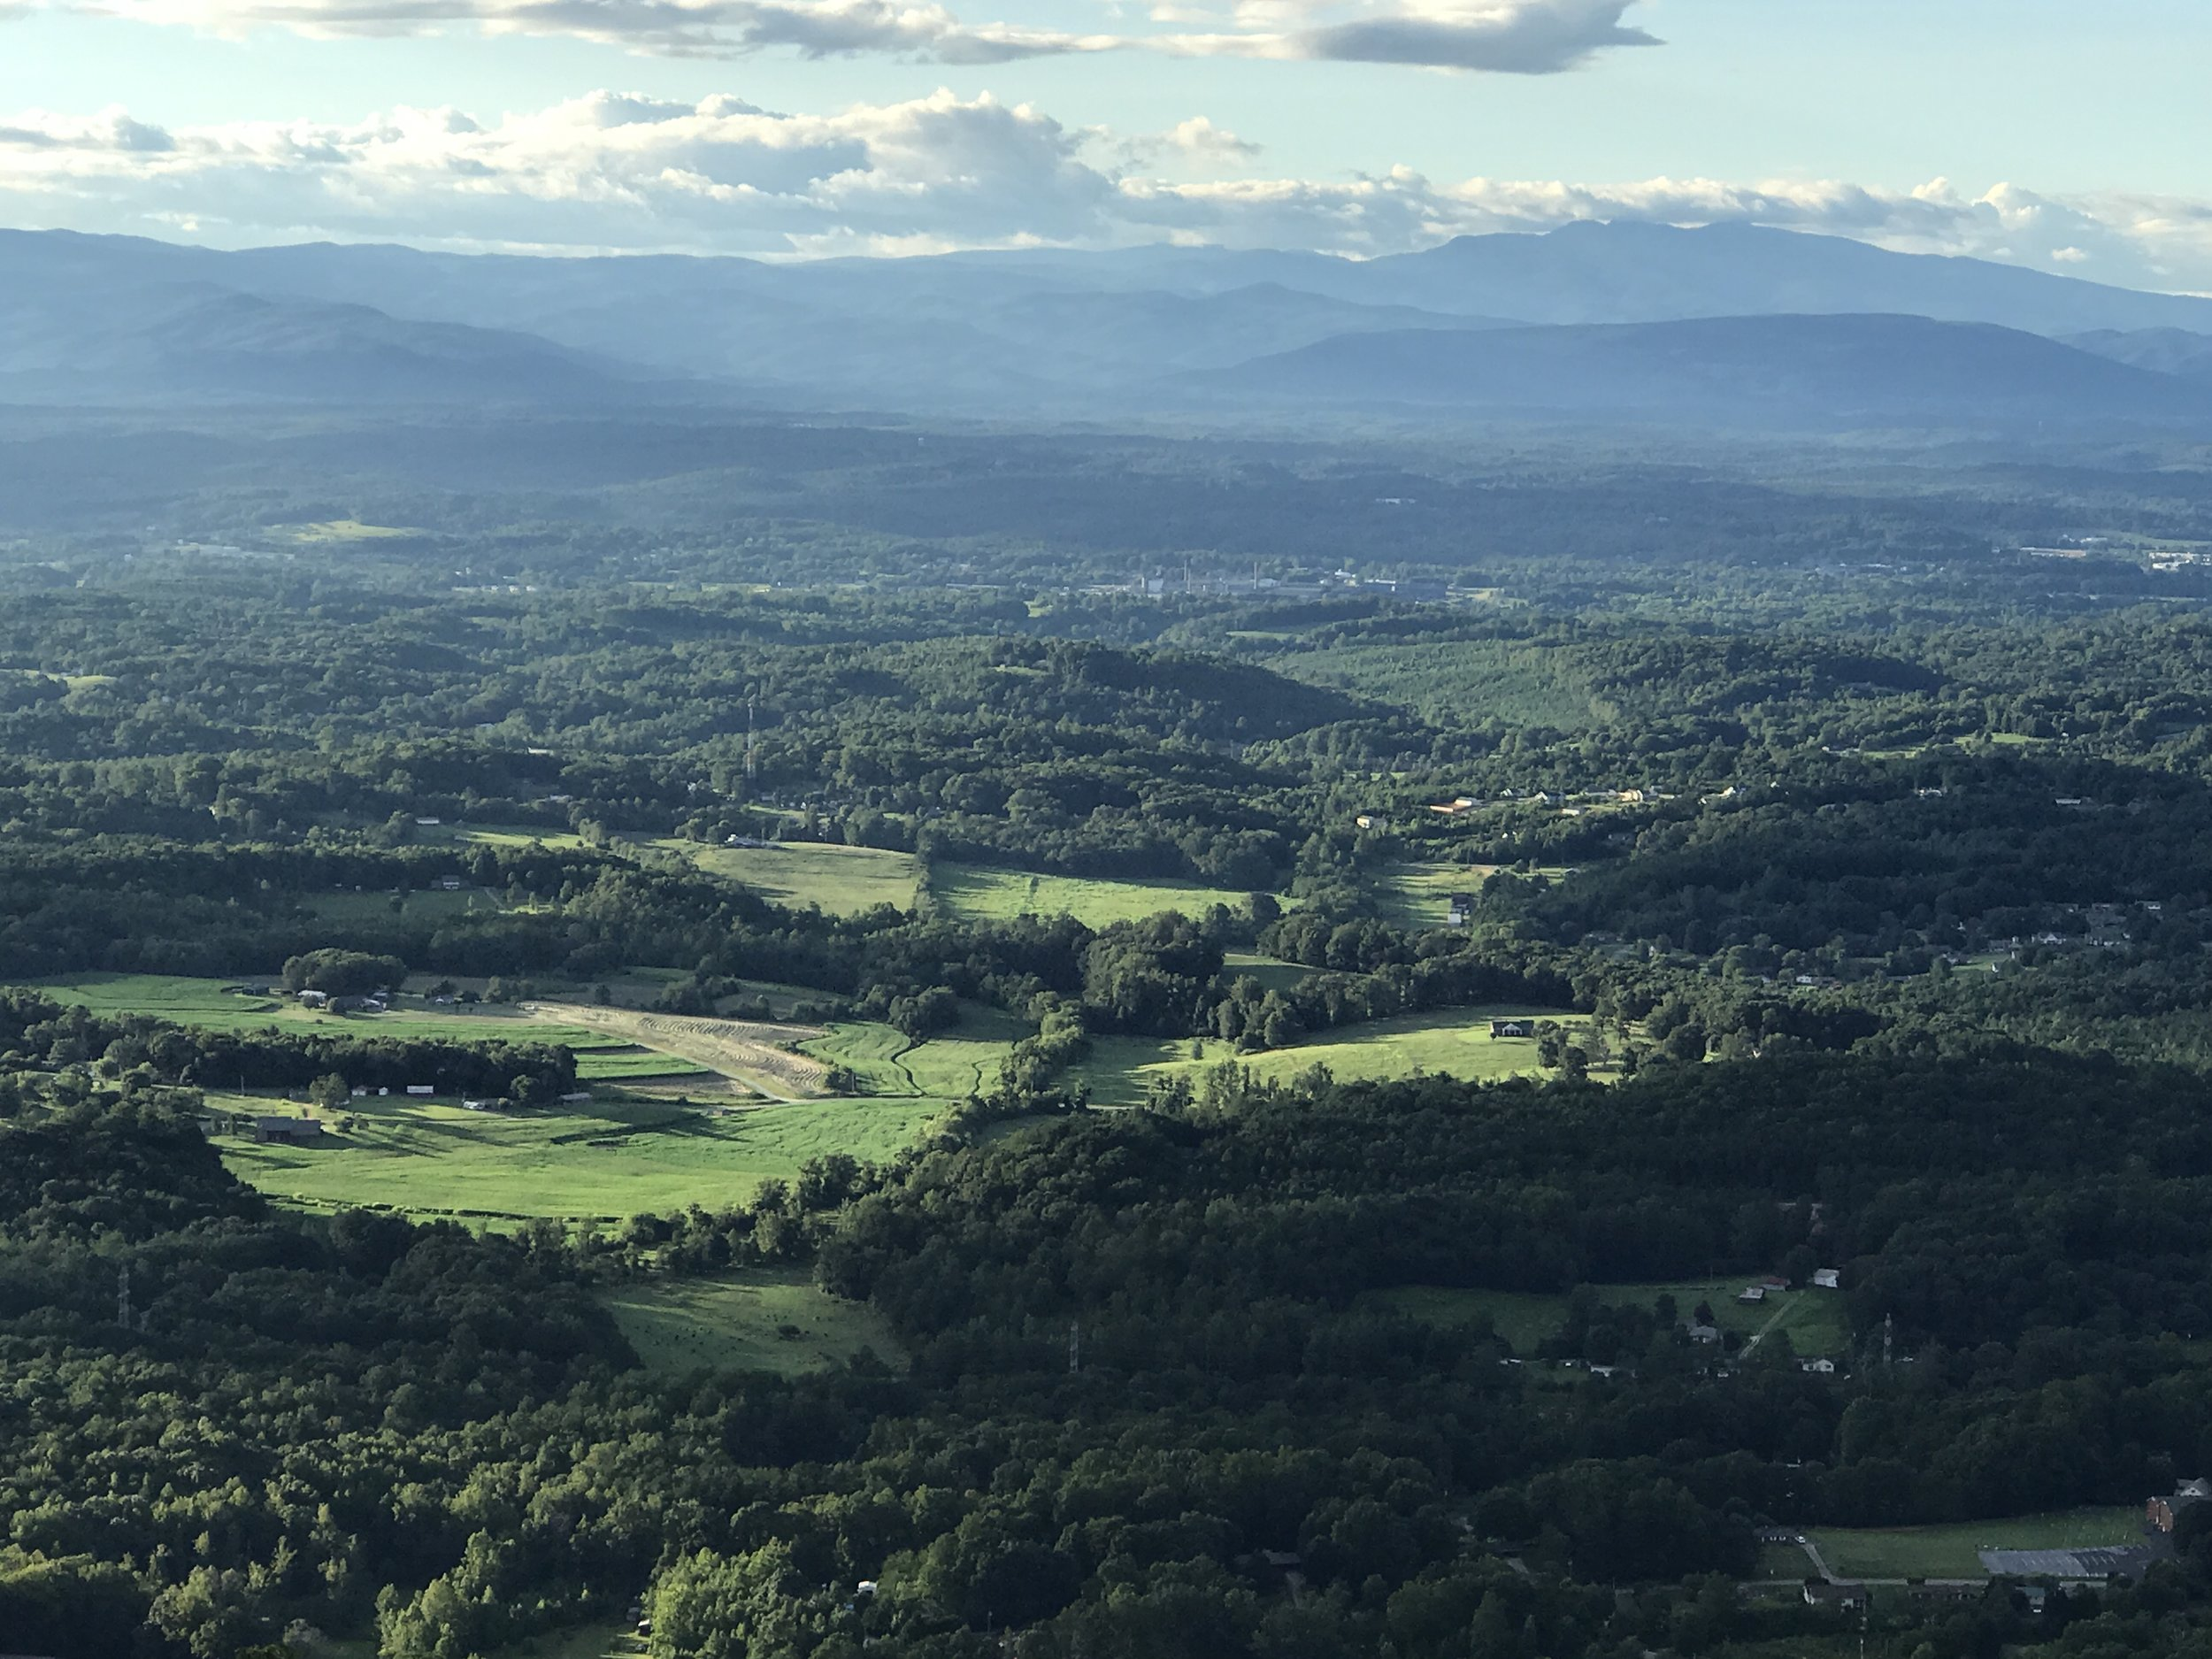 Valley and Grandfather Mountain in the distance.